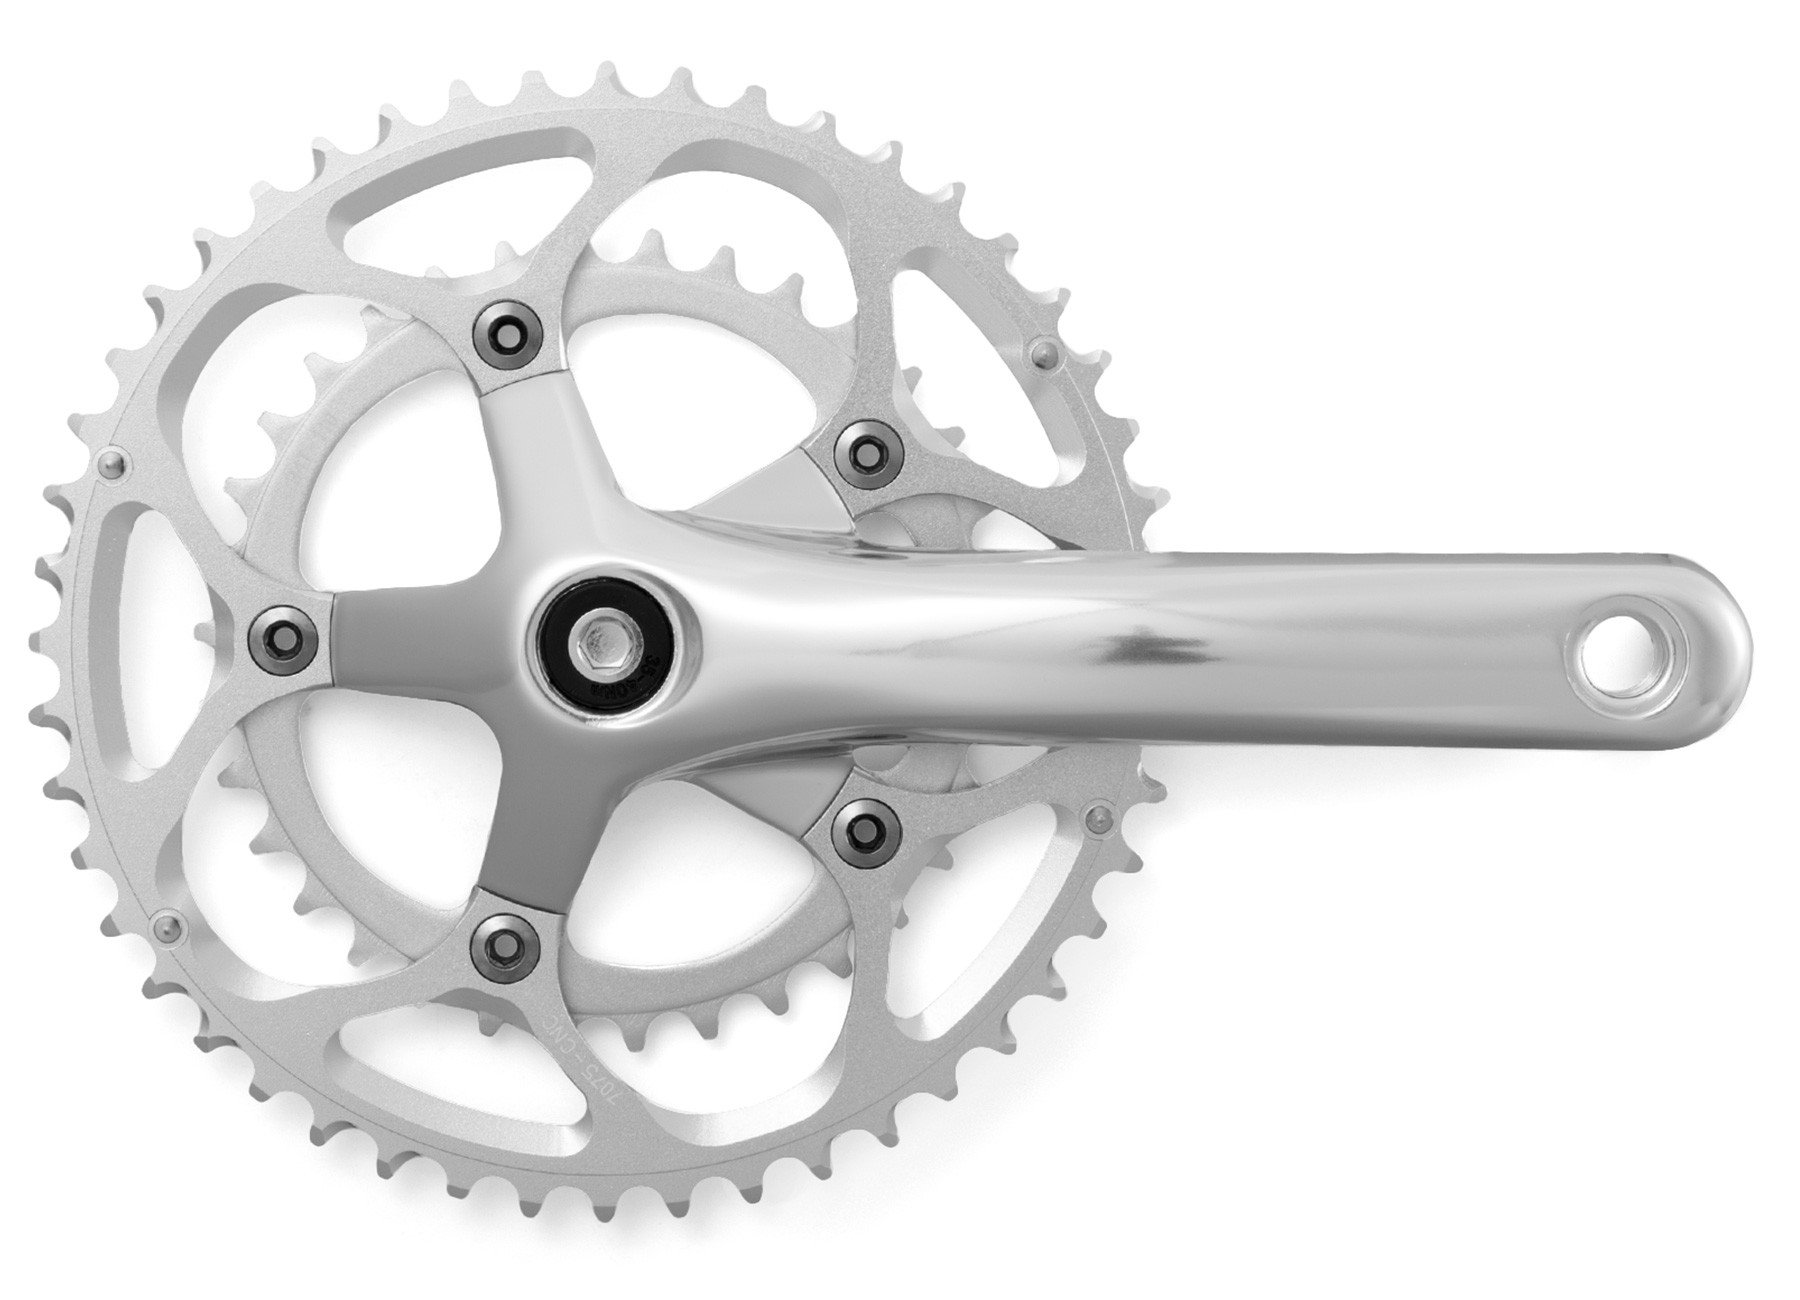 Compact Double Crank Set 48 / 34 Chainrings Silver – Handsome Cycles